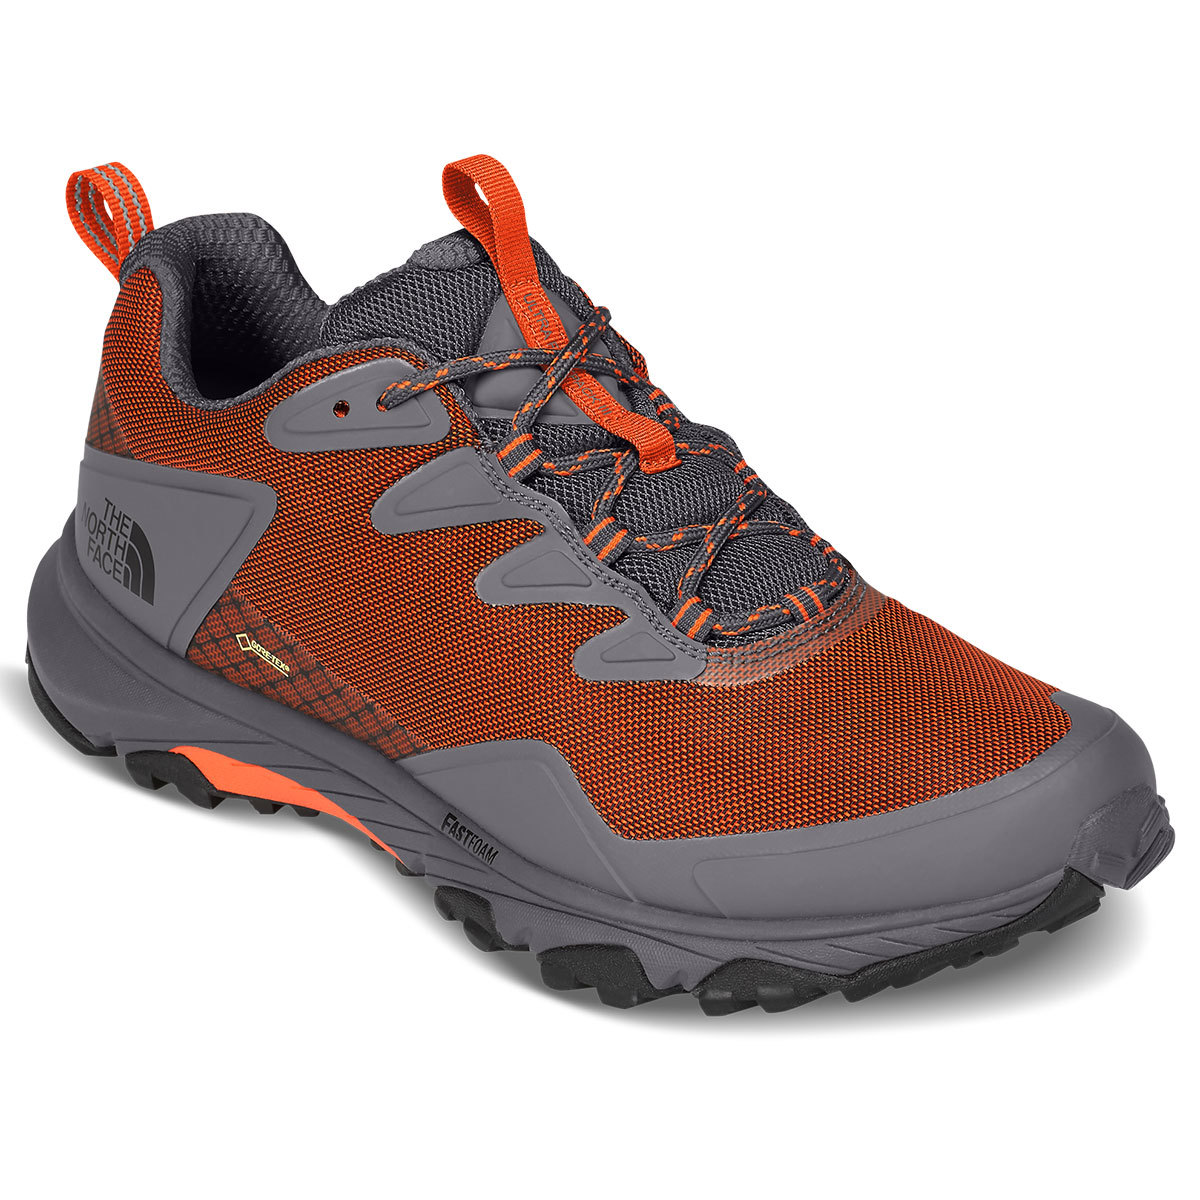 The North Face Men's Ultra Fastpack Iii Gtx Hiking Shoes - Red, 8.5